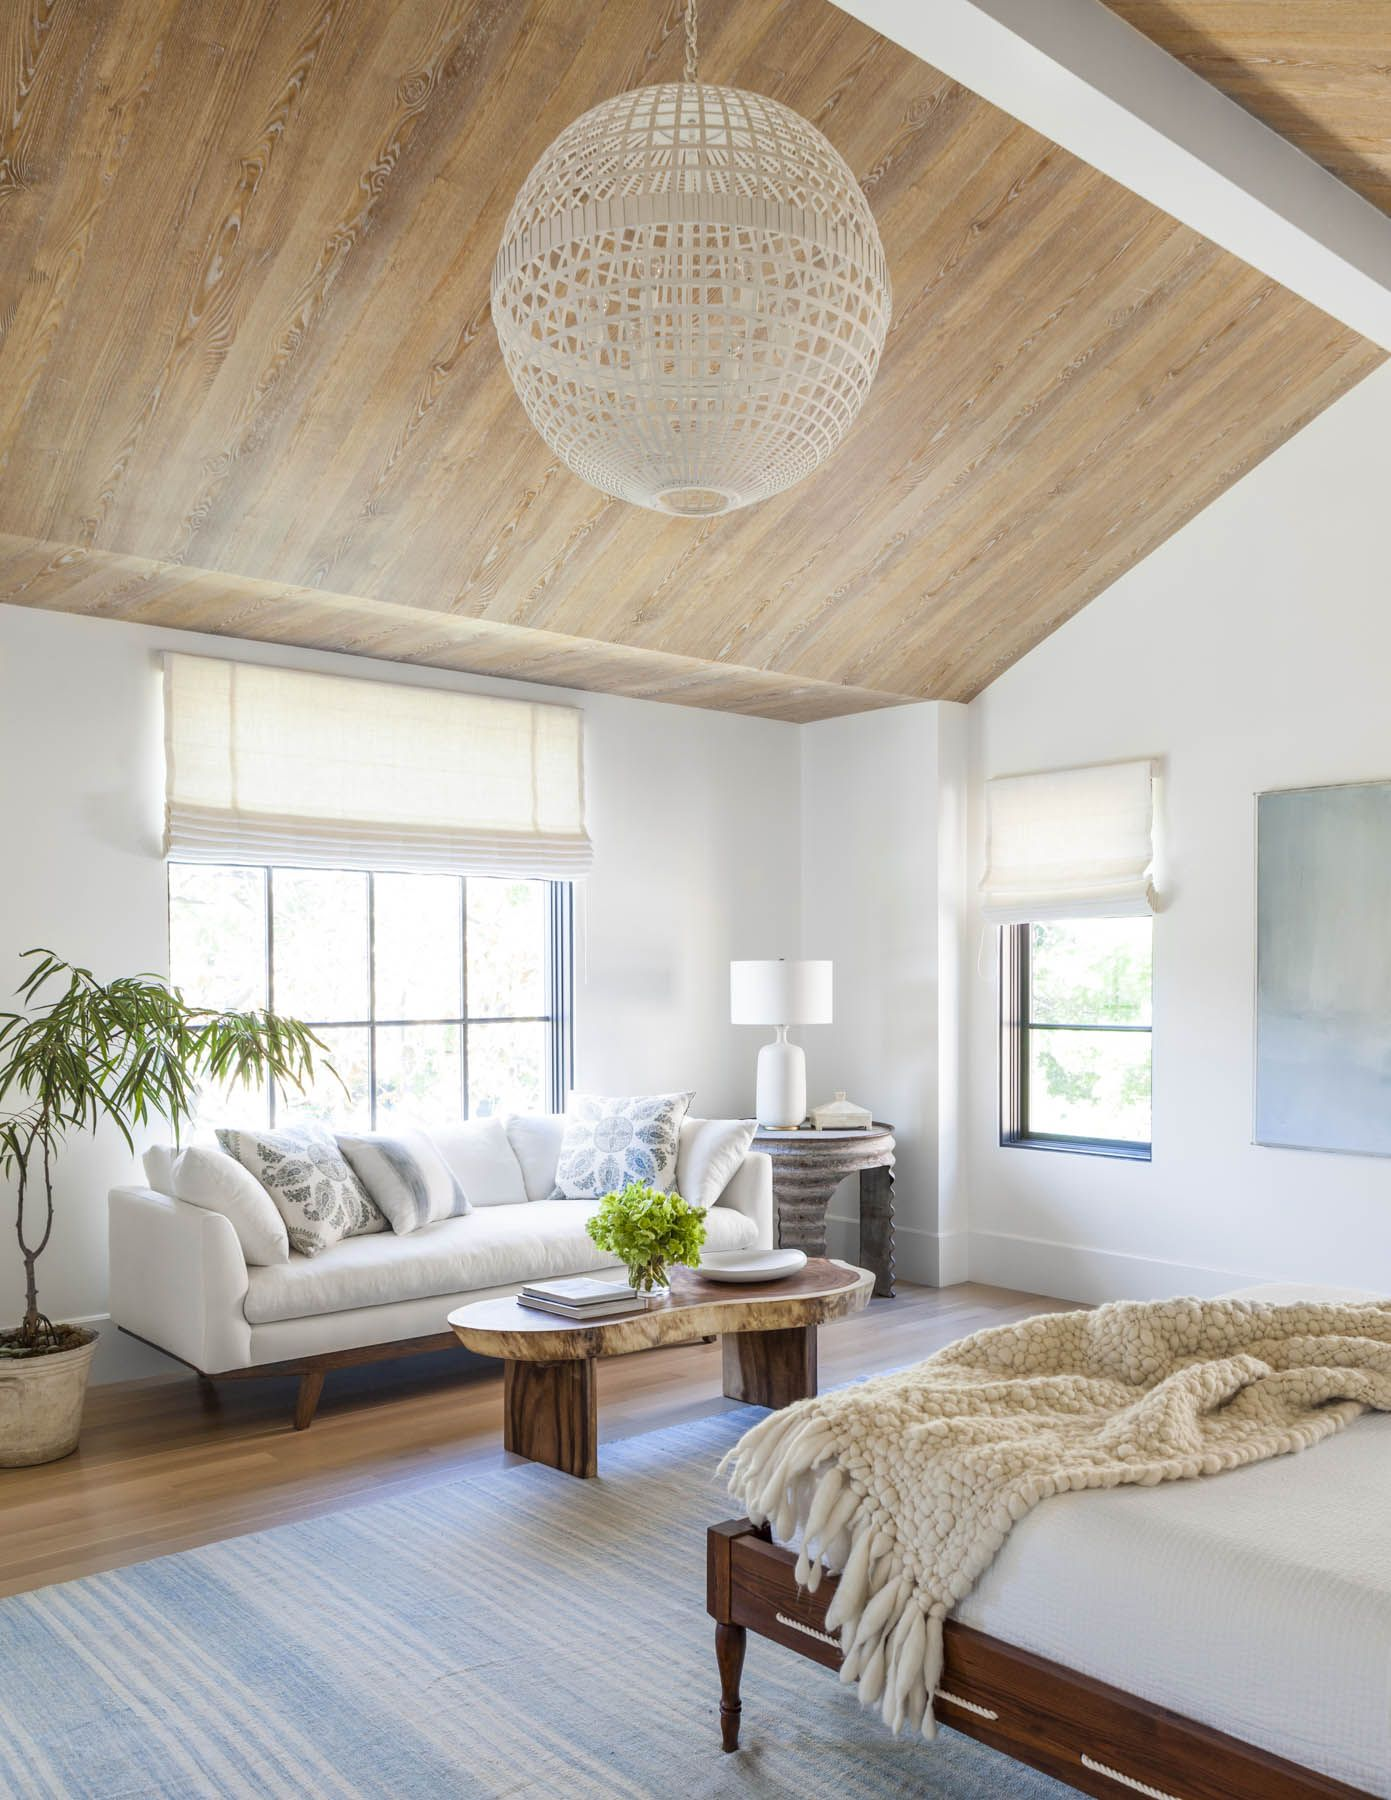 Great house tour 3521 Colgate Image 13 | For the Home | Pinterest ...